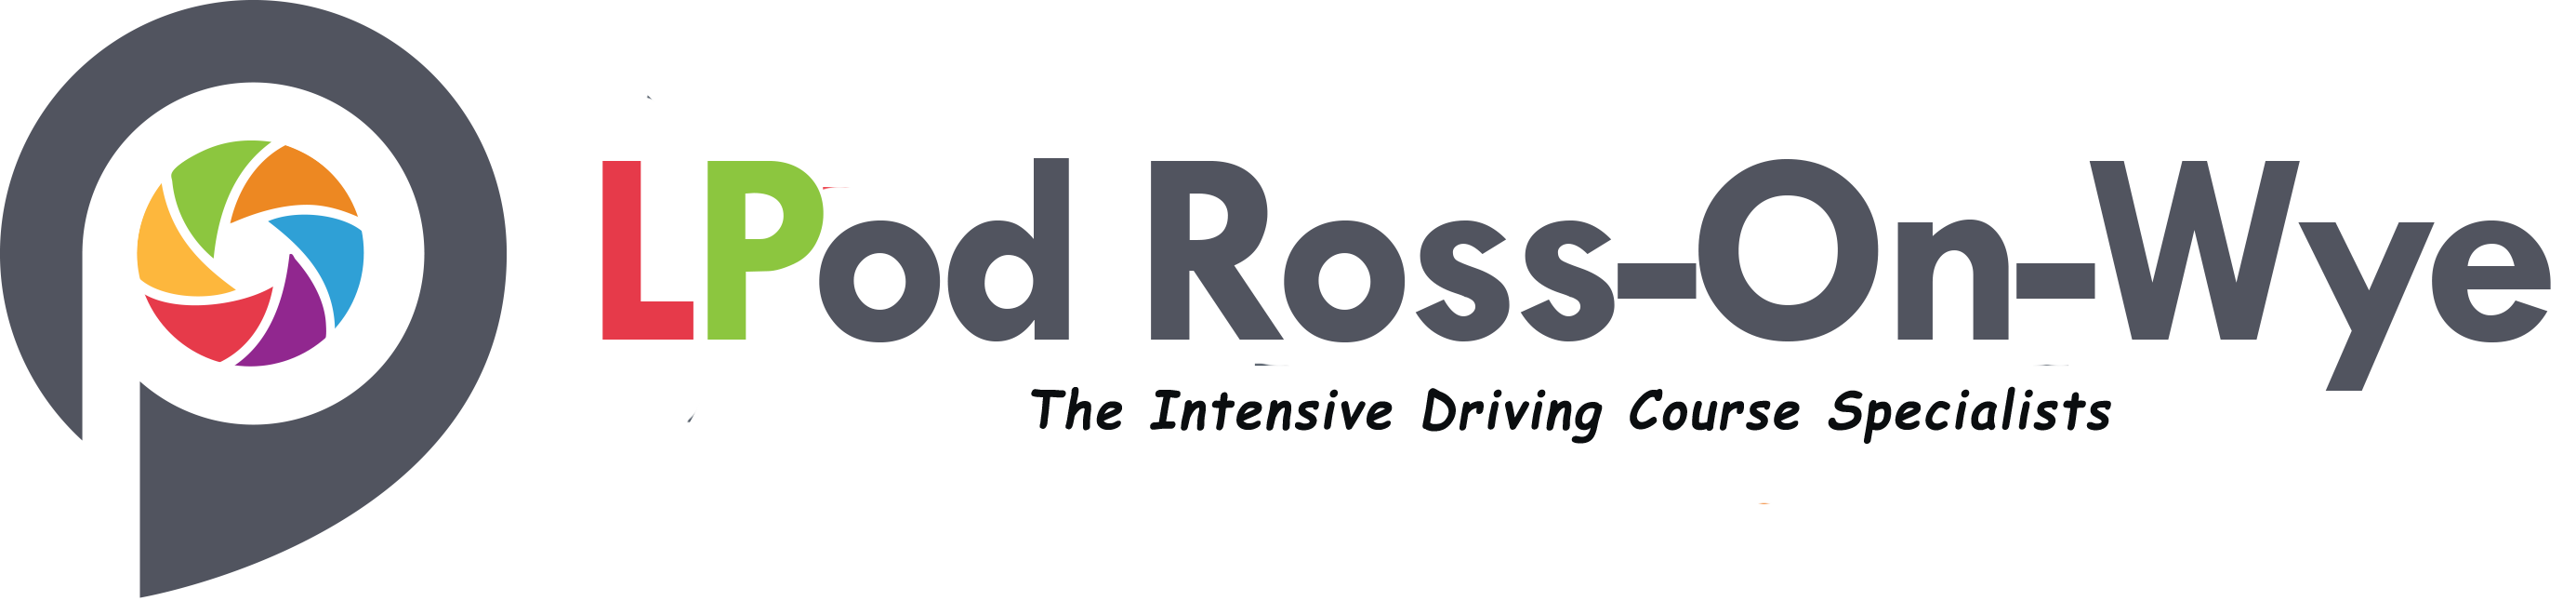 intensive driving courses ross-on-wye, one week driving courses Ross On Wye, fast pass driving courses ross on wye